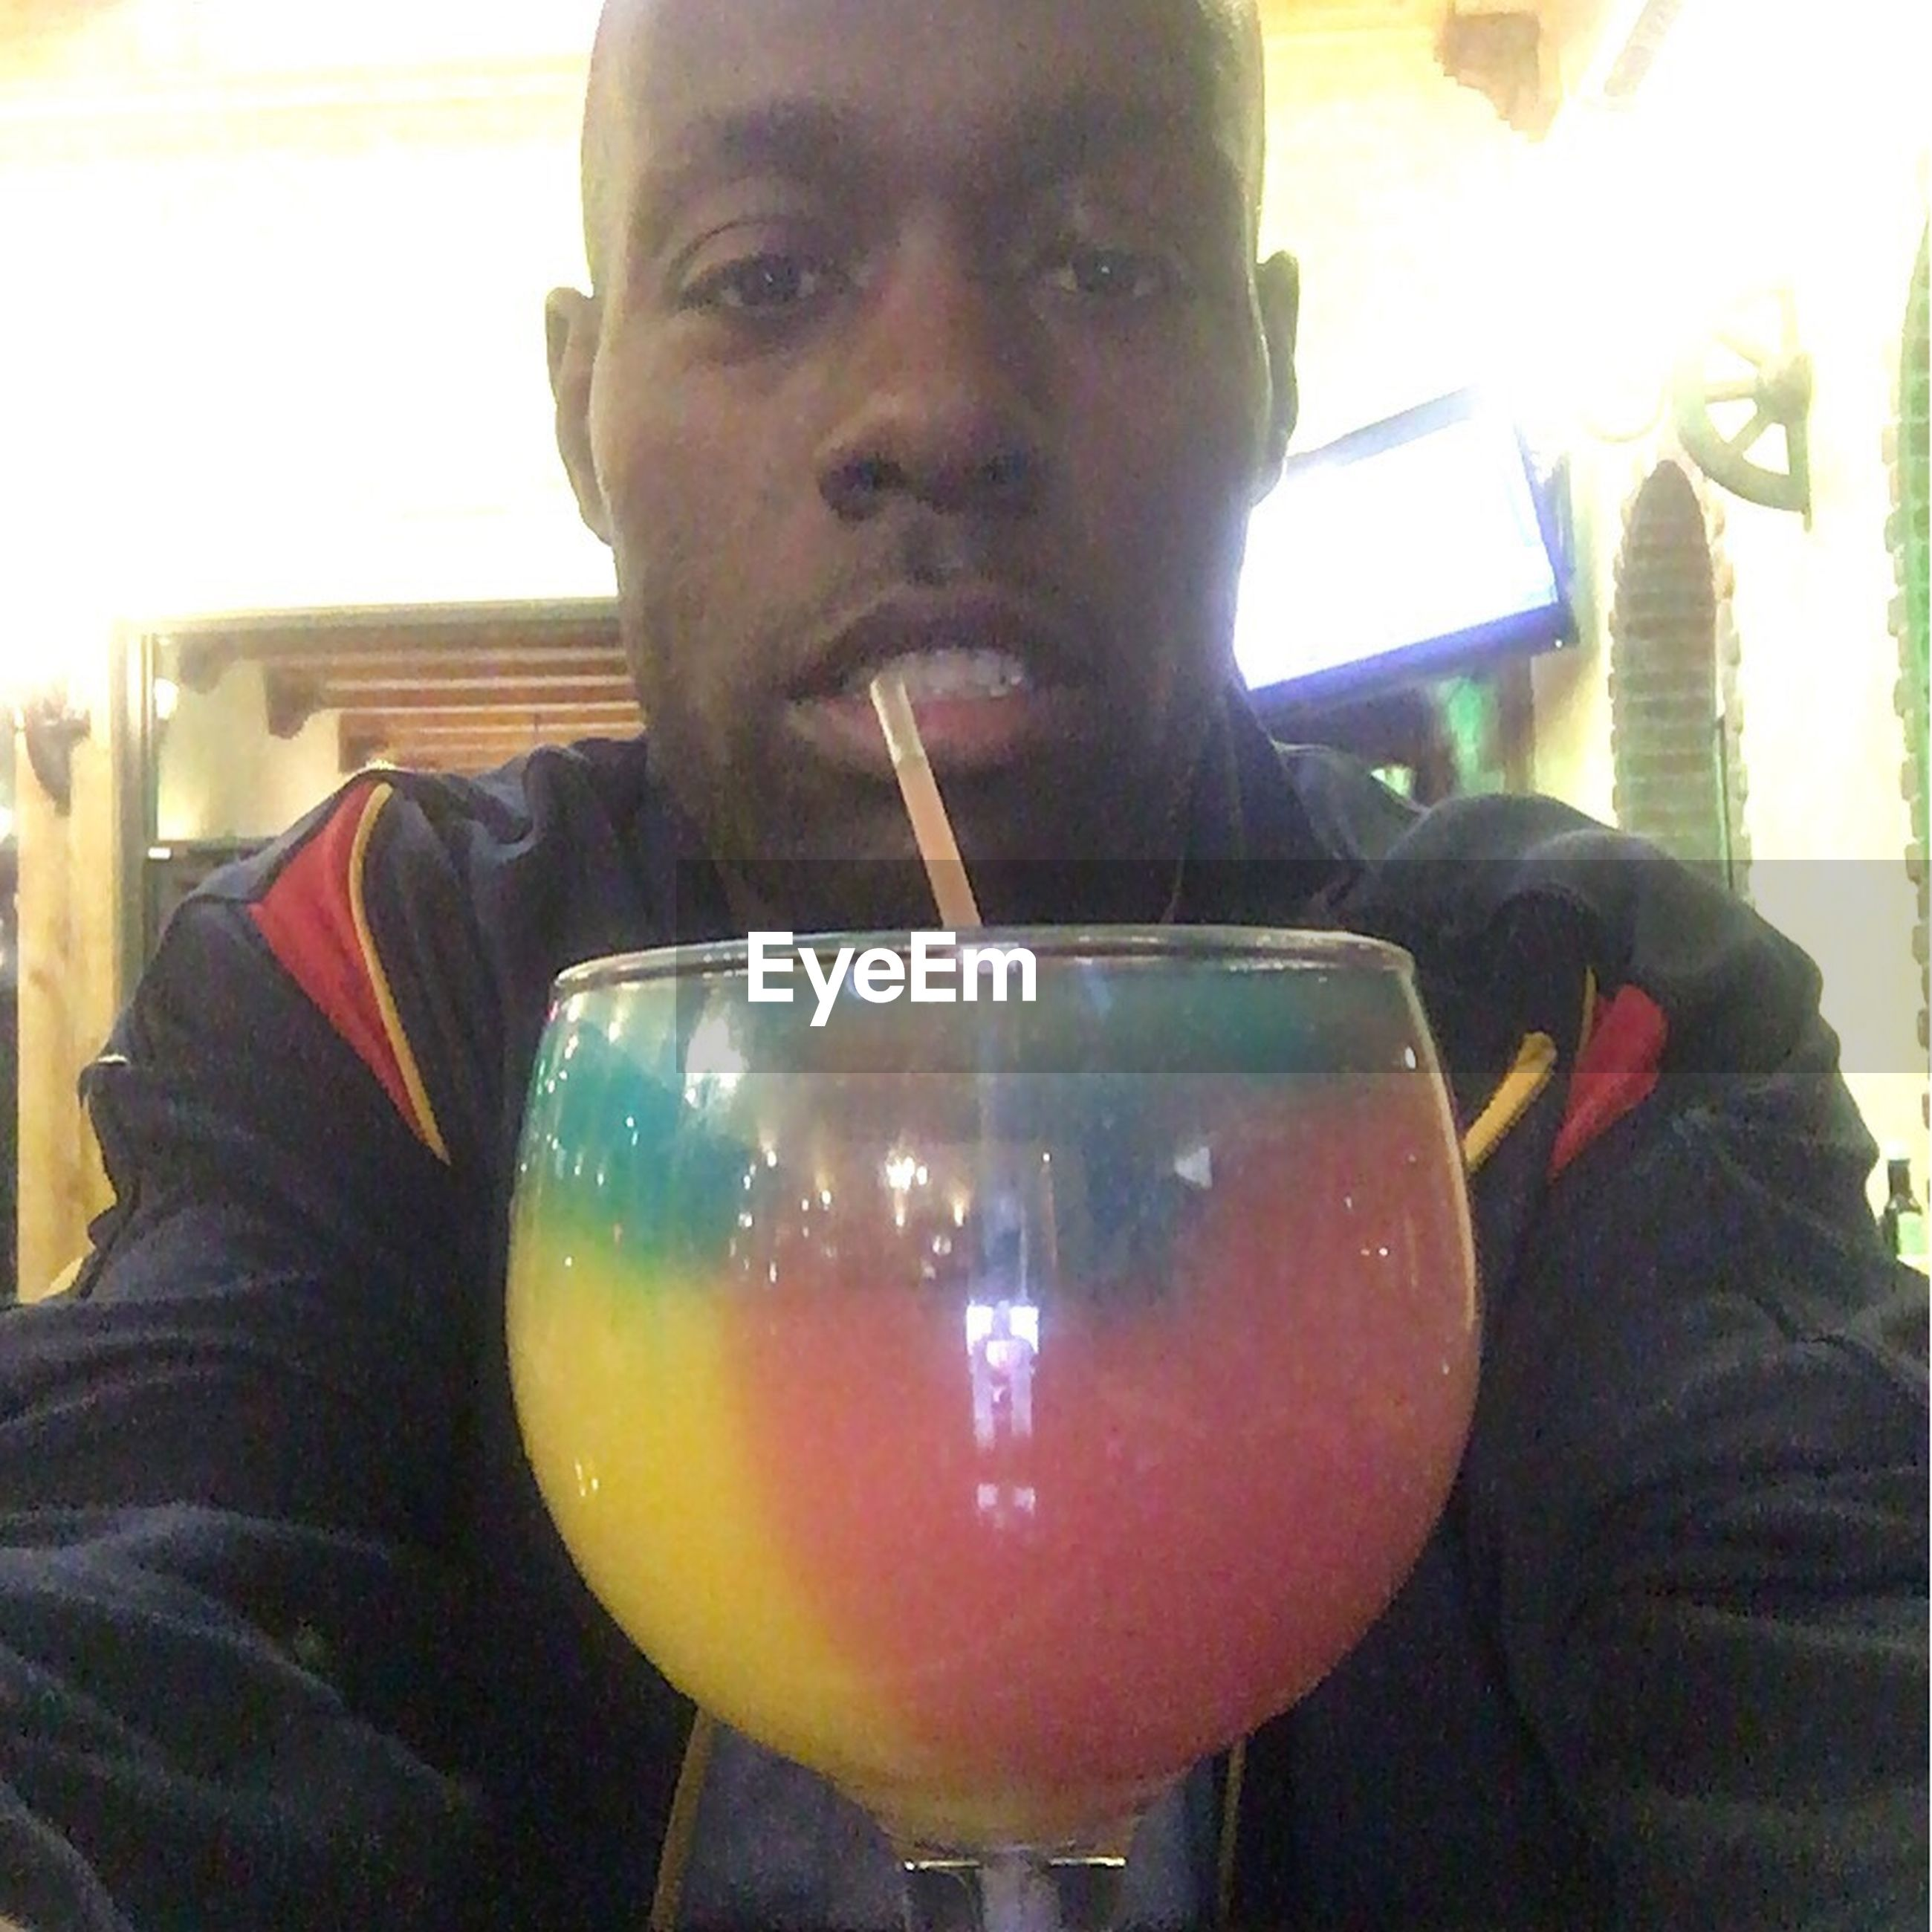 food and drink, indoors, drink, lifestyles, refreshment, leisure activity, holding, drinking glass, close-up, alcohol, person, headshot, freshness, young men, front view, food, restaurant, casual clothing